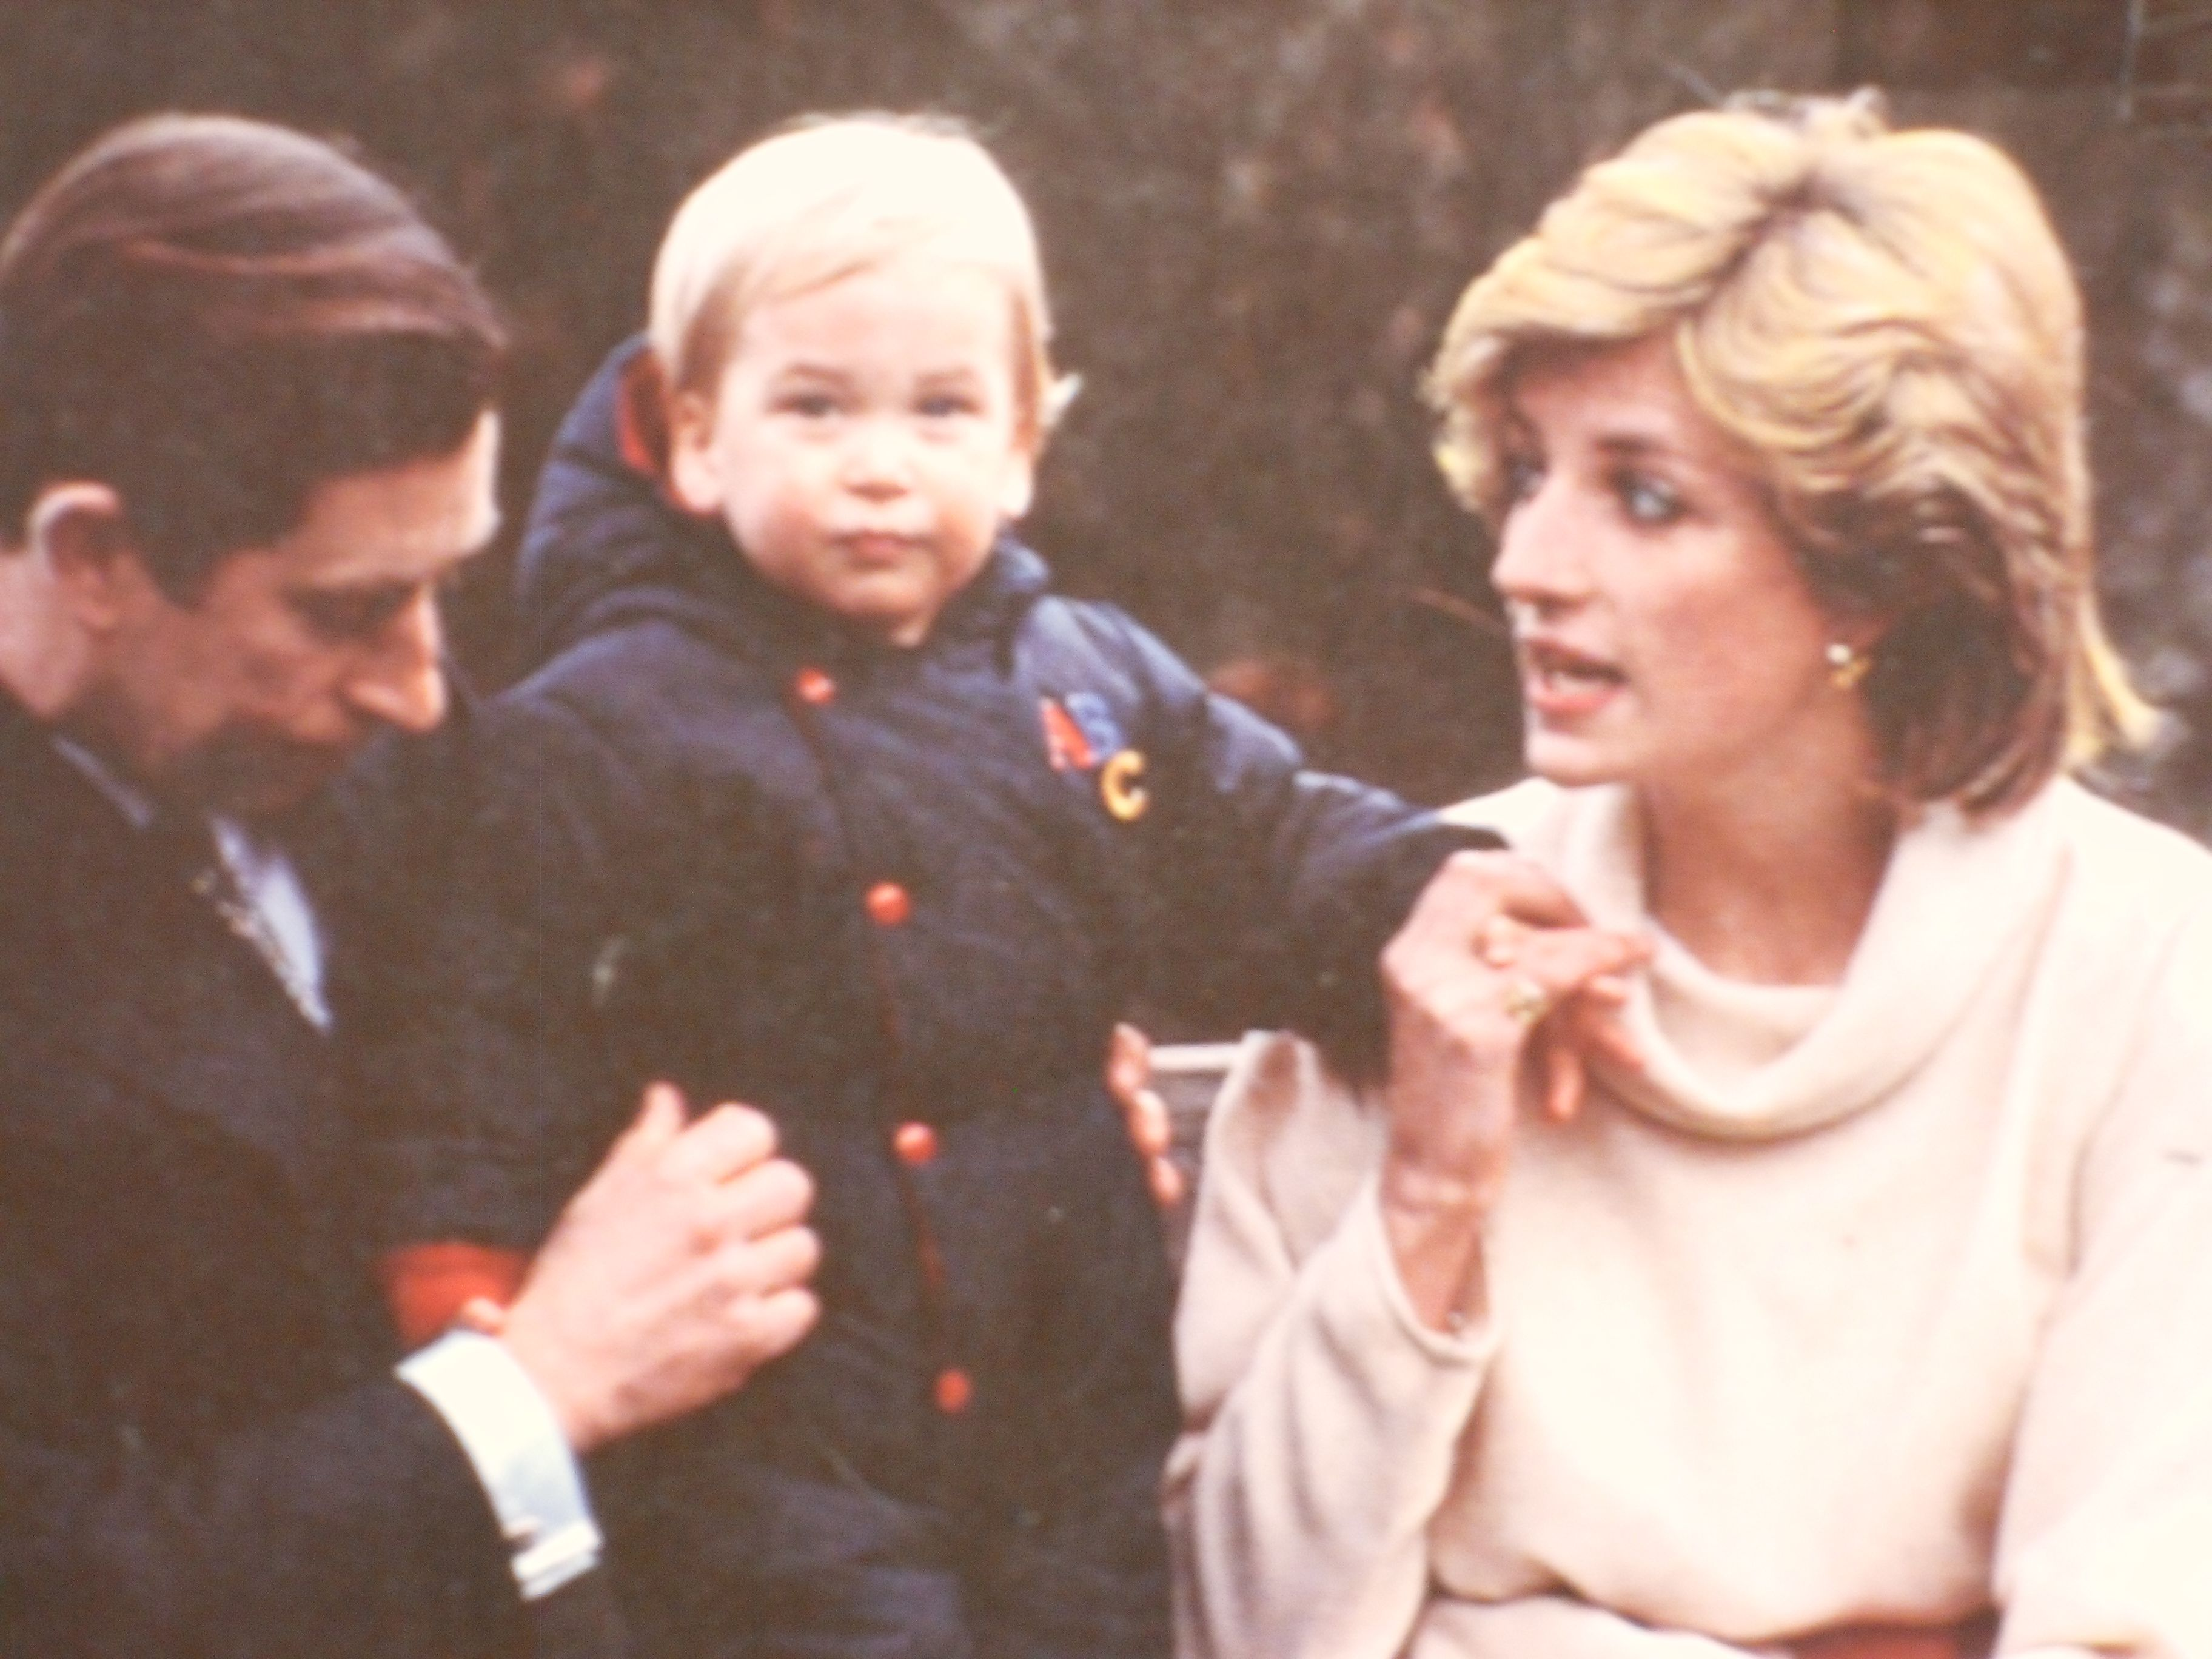 Prince William talks about losing mother Princess Diana